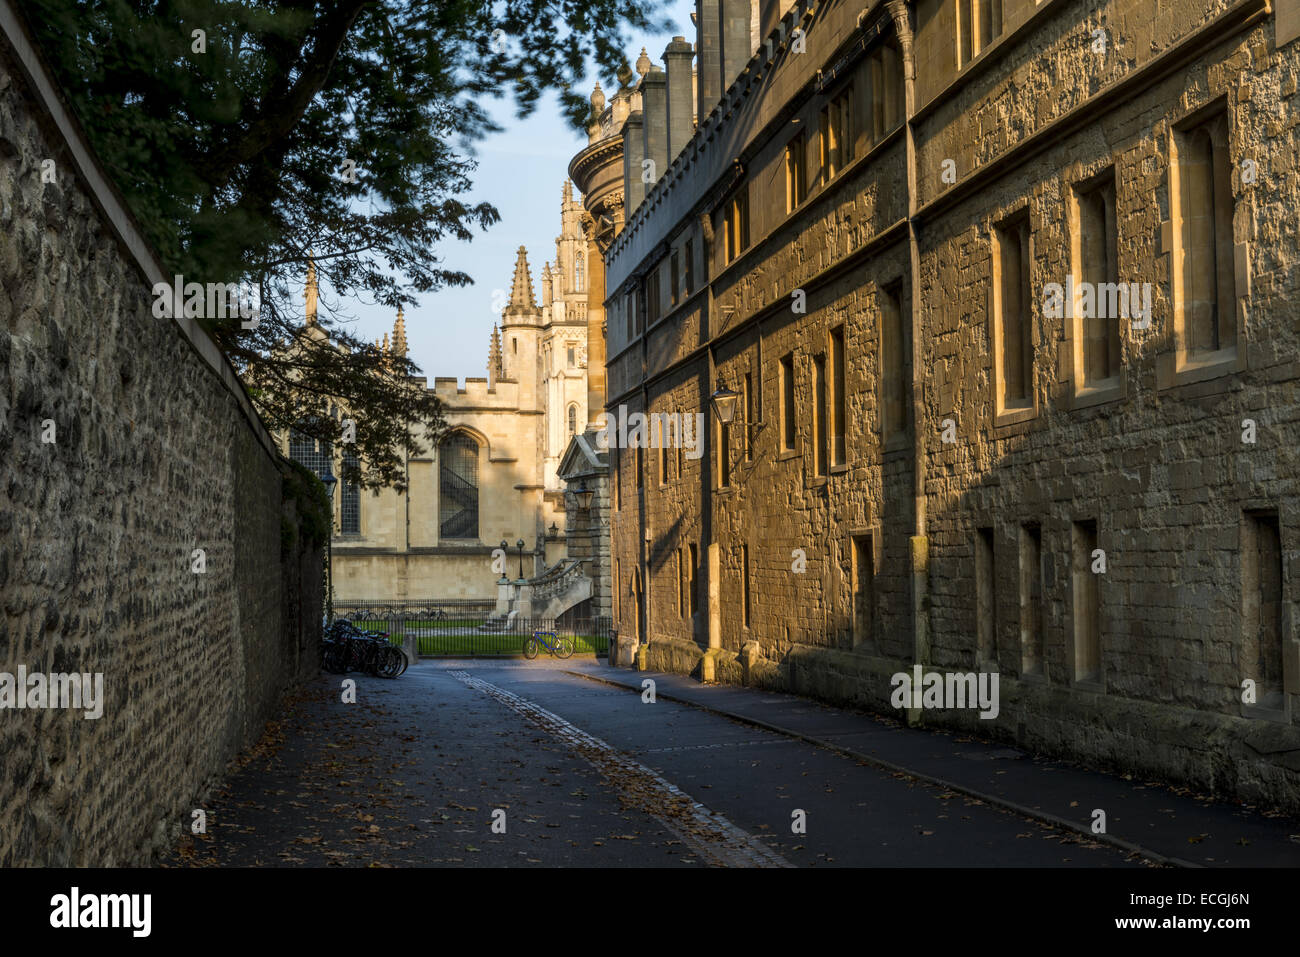 Looking down Brasenose Lane to Radcliffe Square and All Souls College with Brasenose College (right) and Exeter - Stock Image